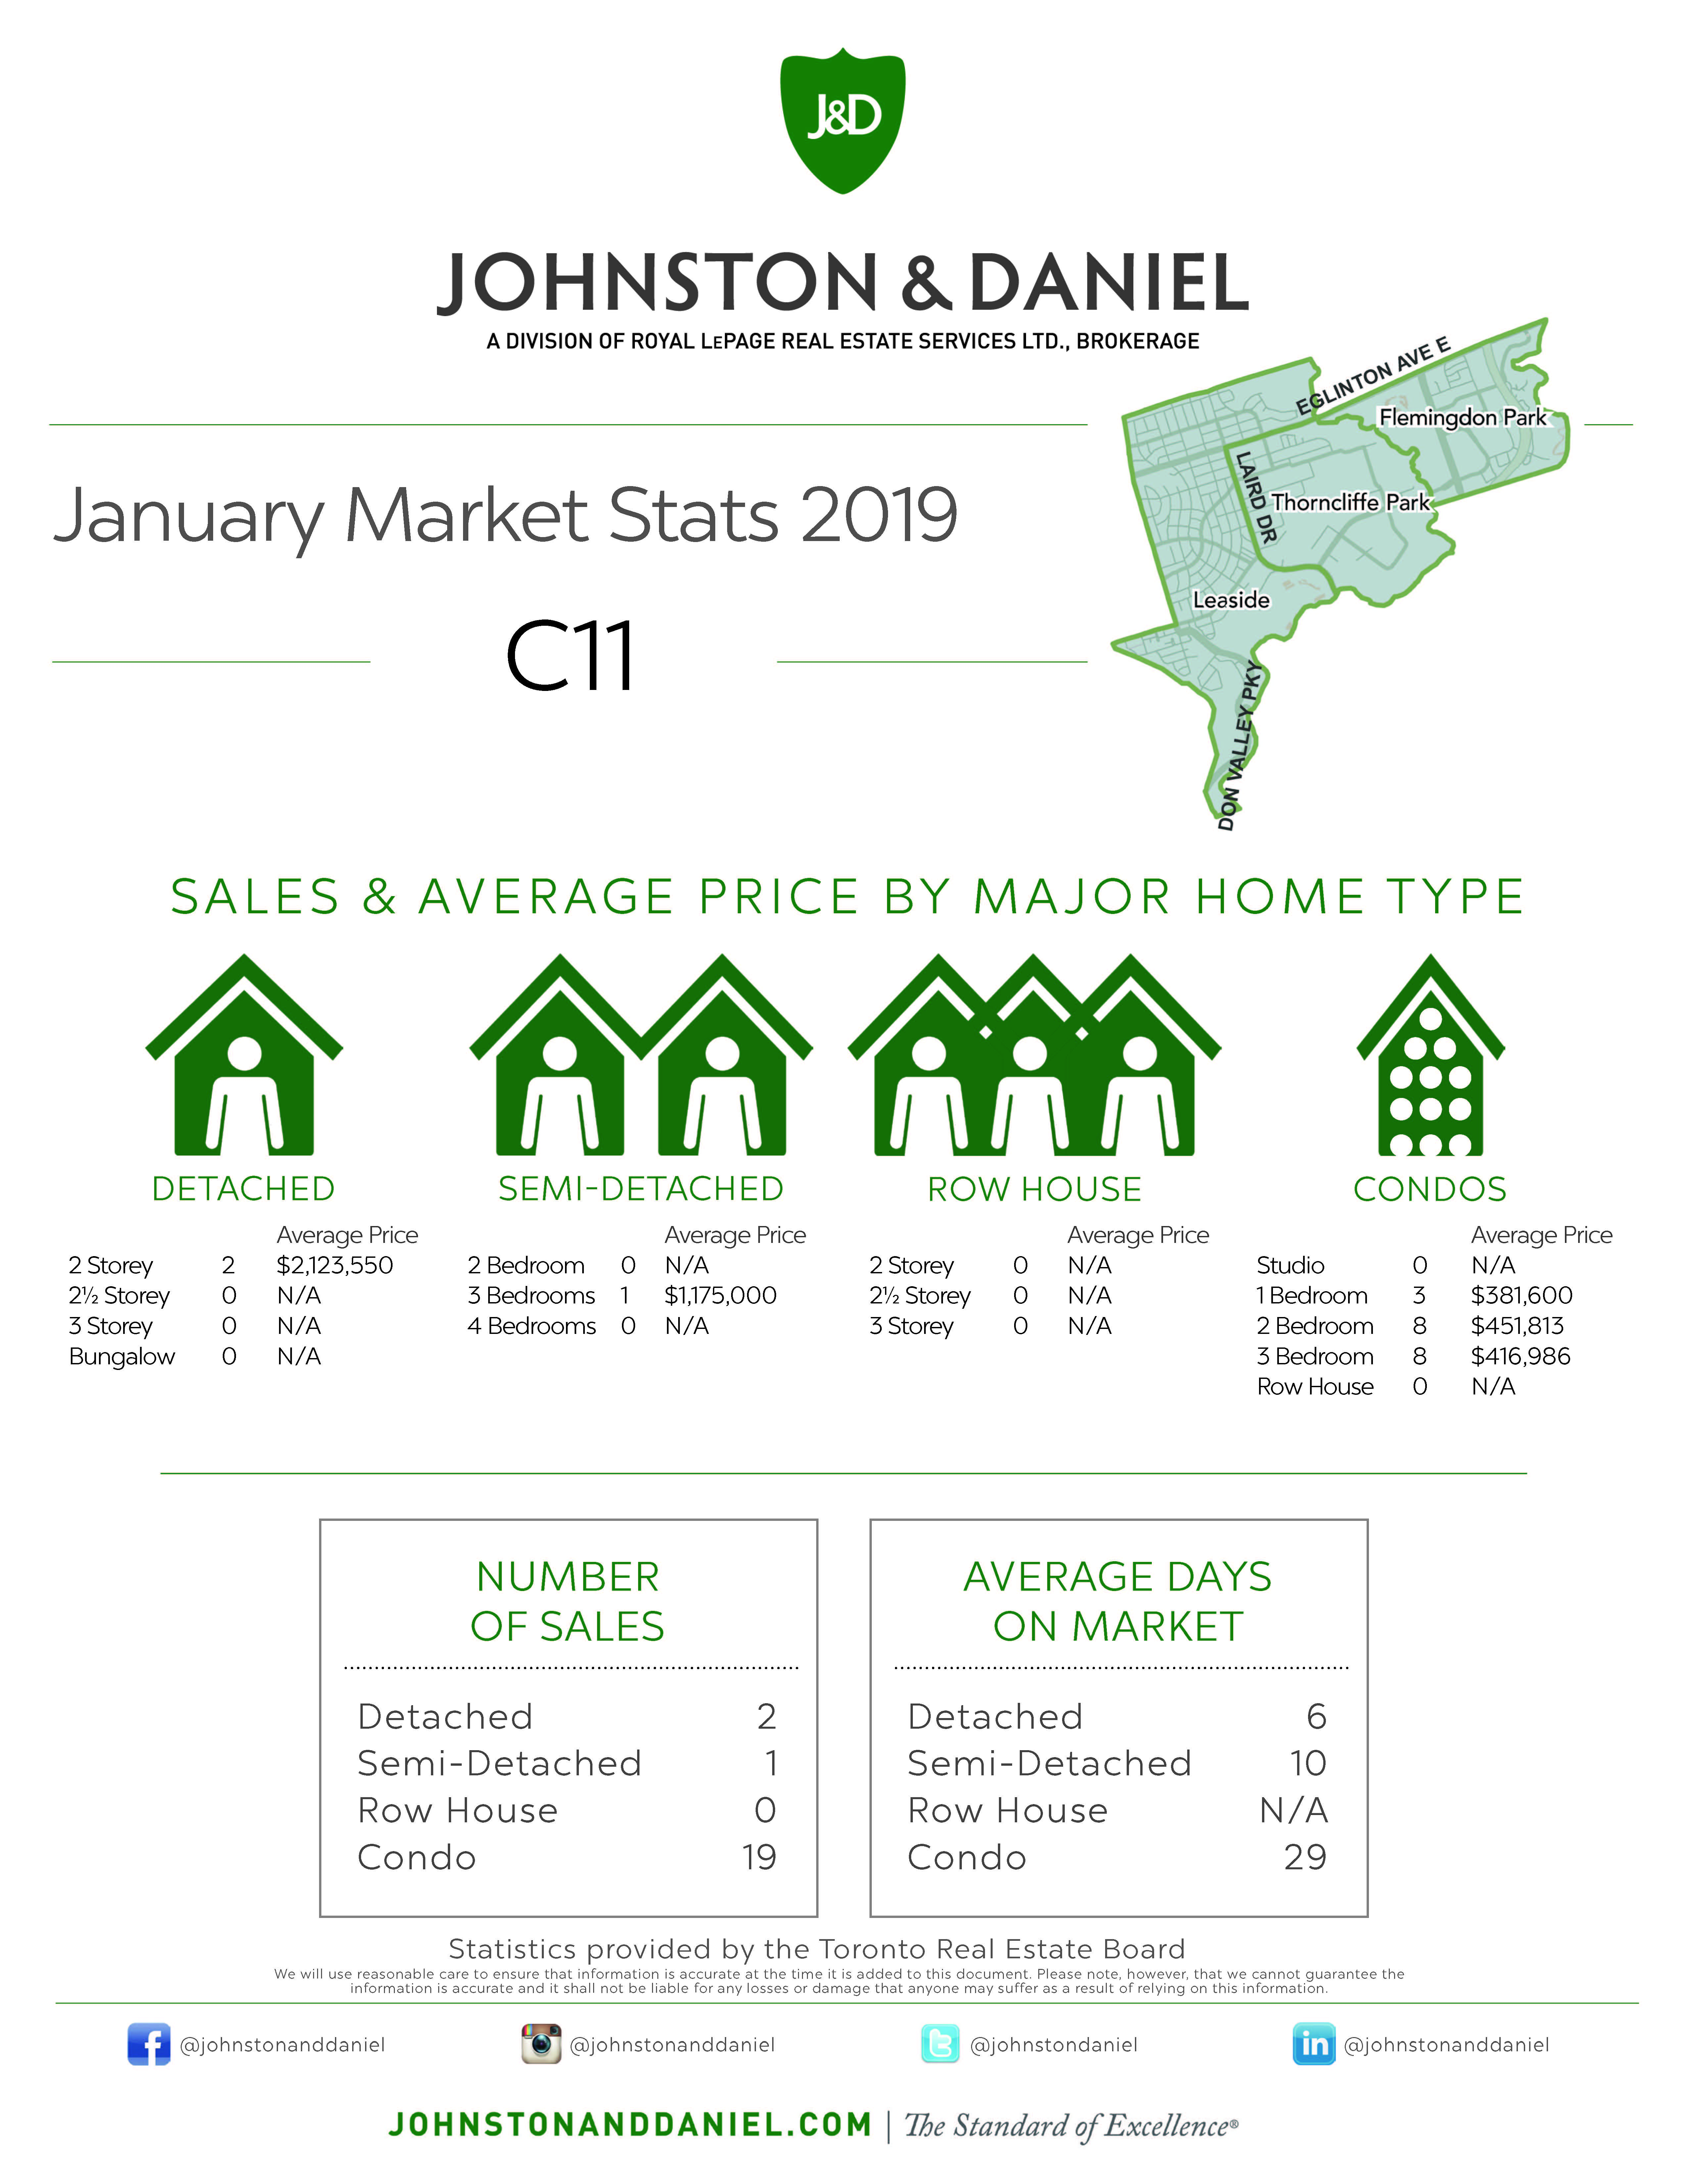 Toronto Real Estate Sales Statistics January 2019 for Area C11